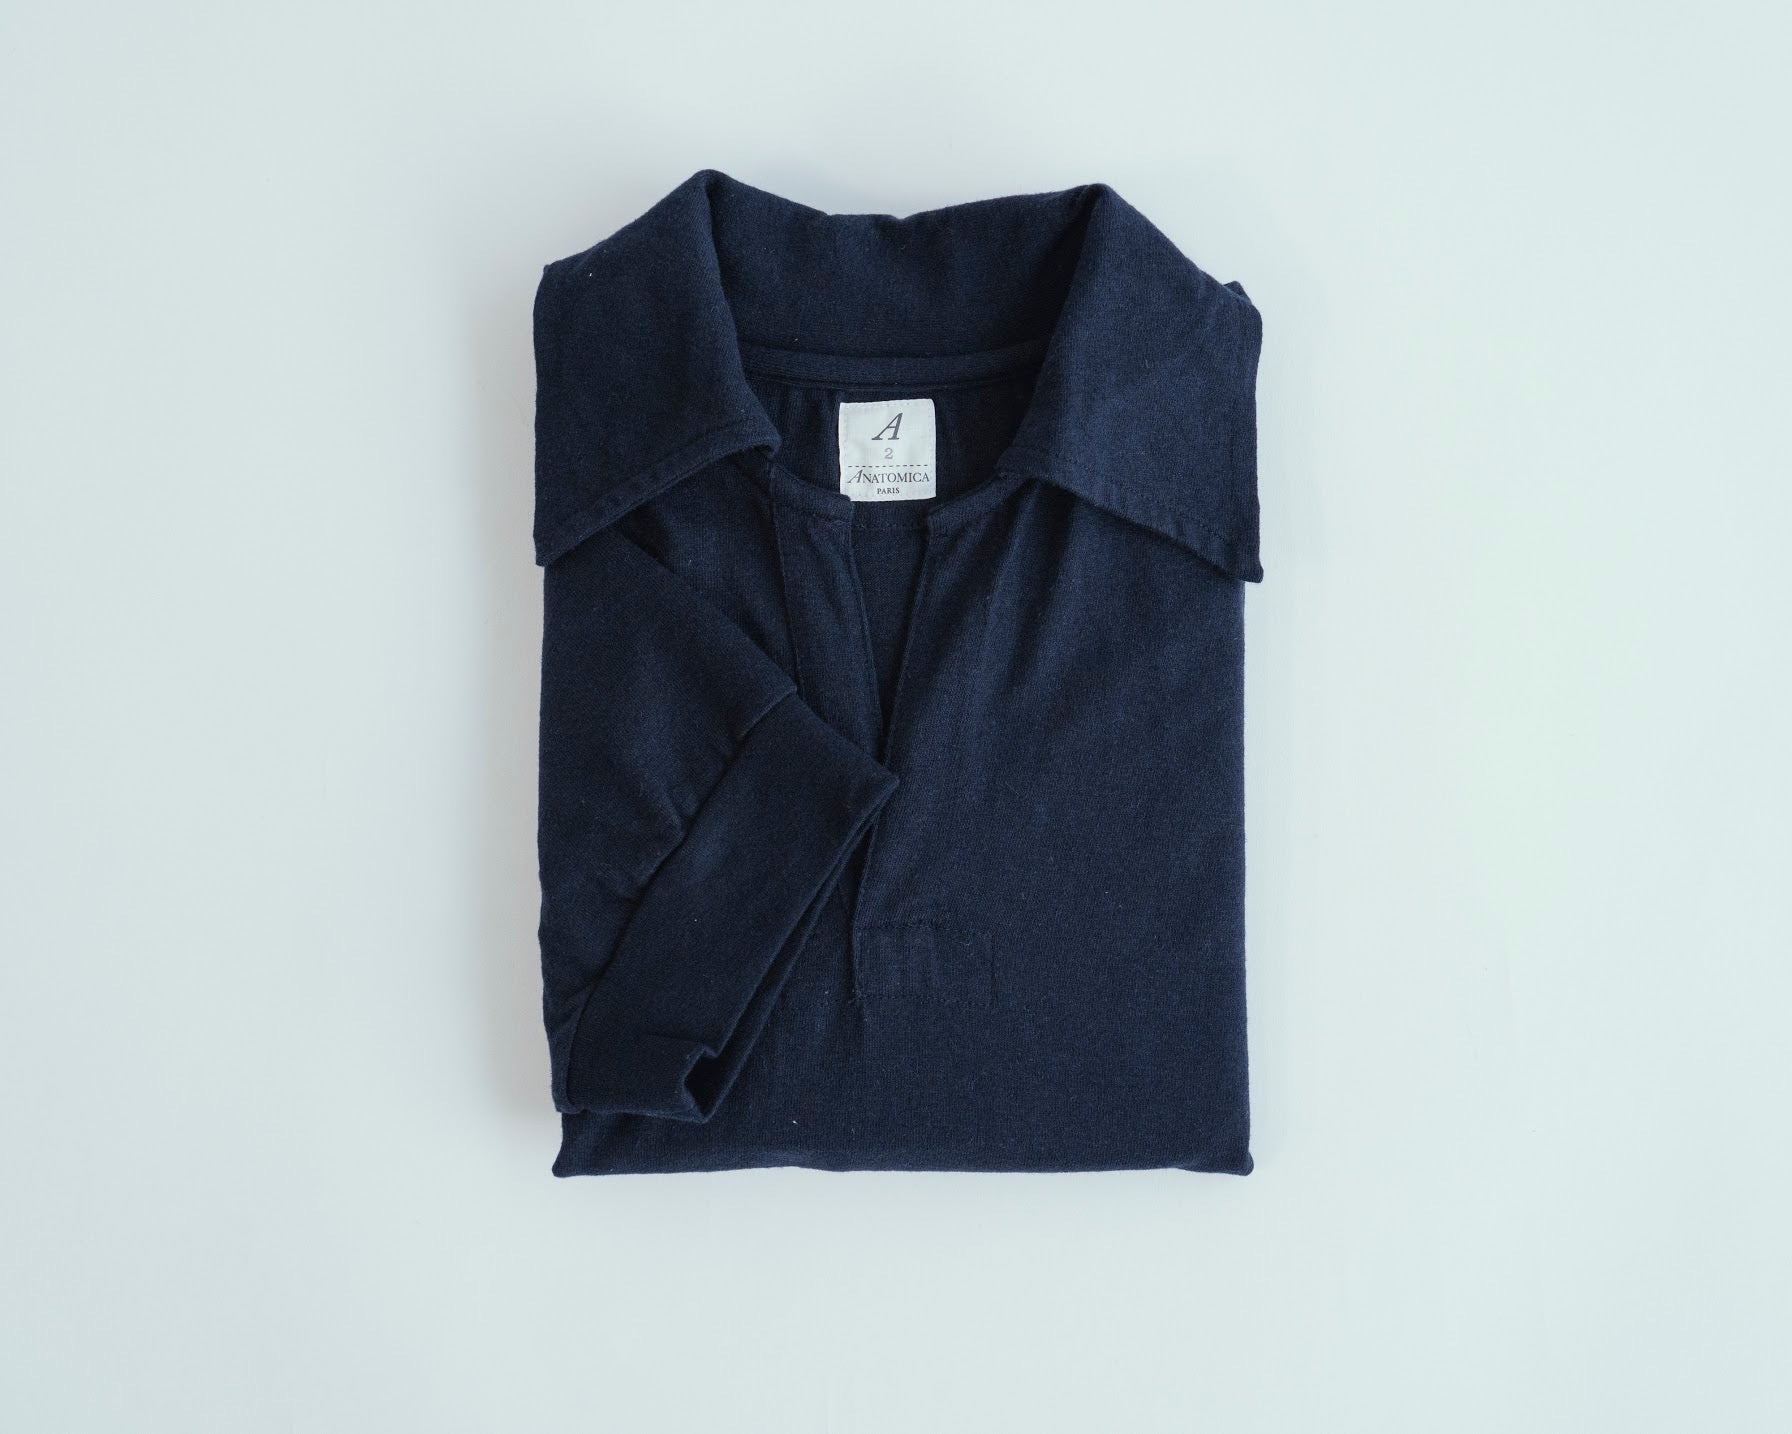 Skipper Polo, Anatomica - The Signet Store